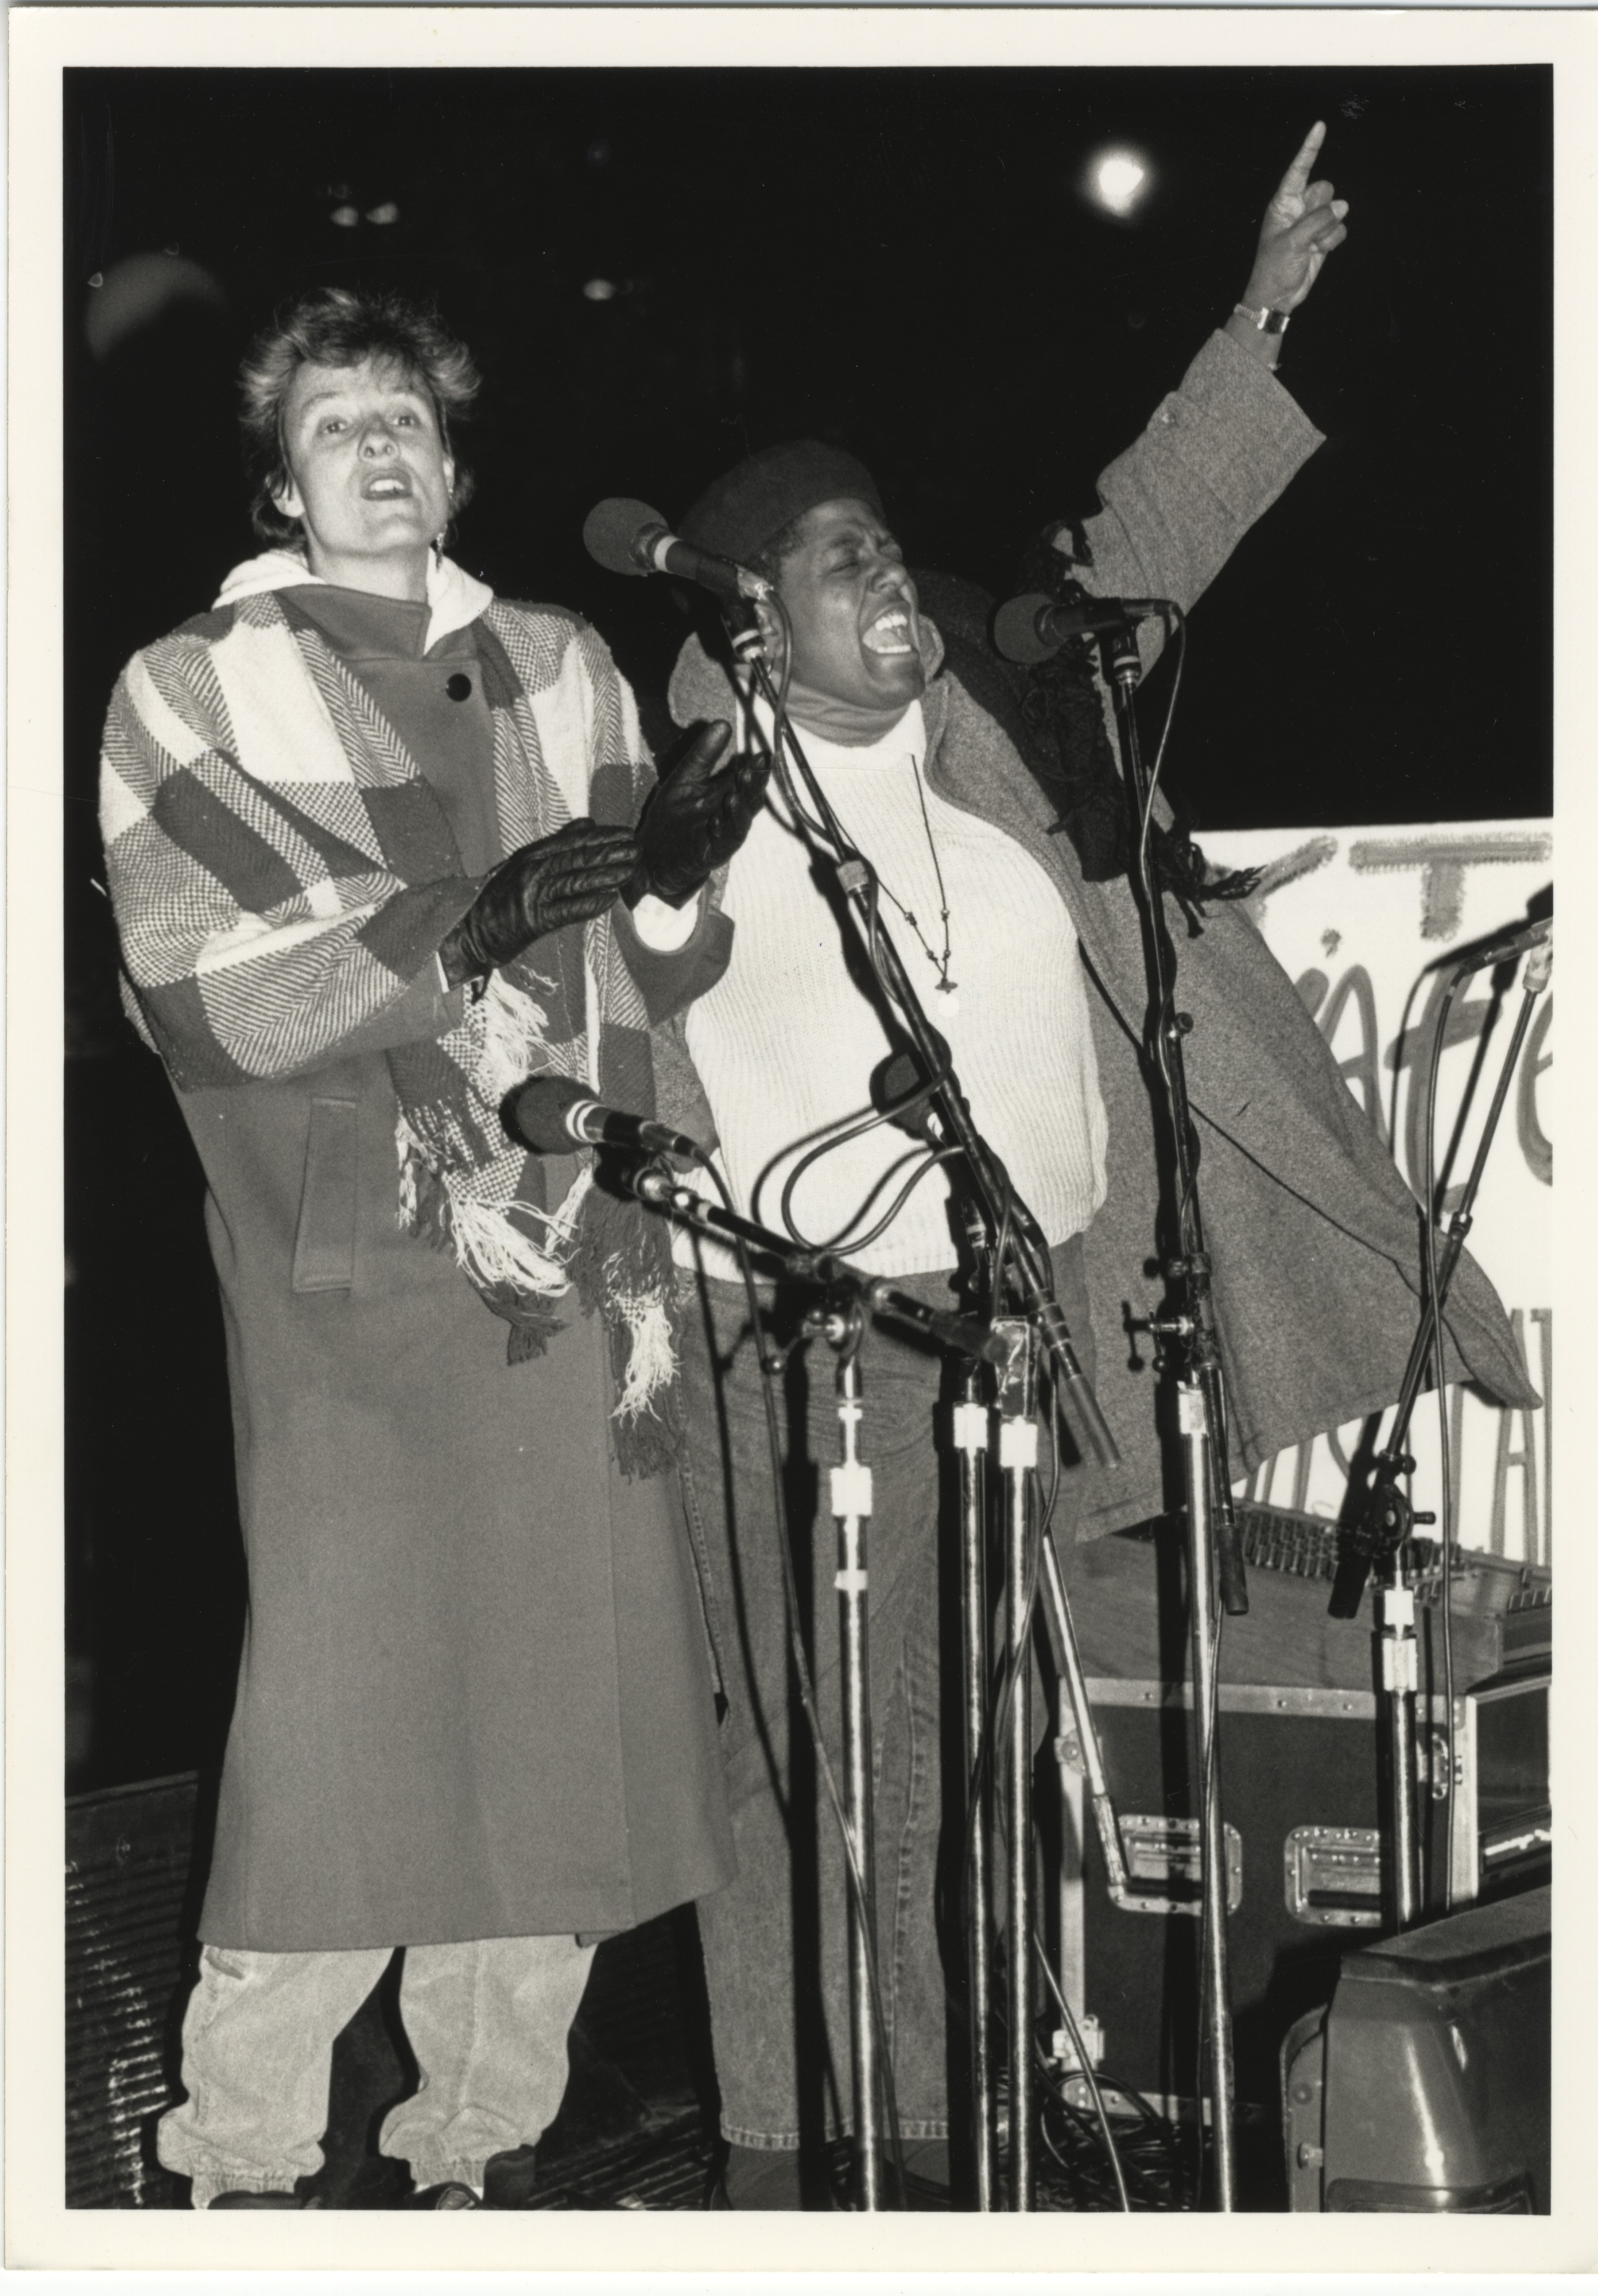 Interfaith Council for Peace and Justice: Yarrow Halstead and Elise Bryant Read Poem, 1991 image